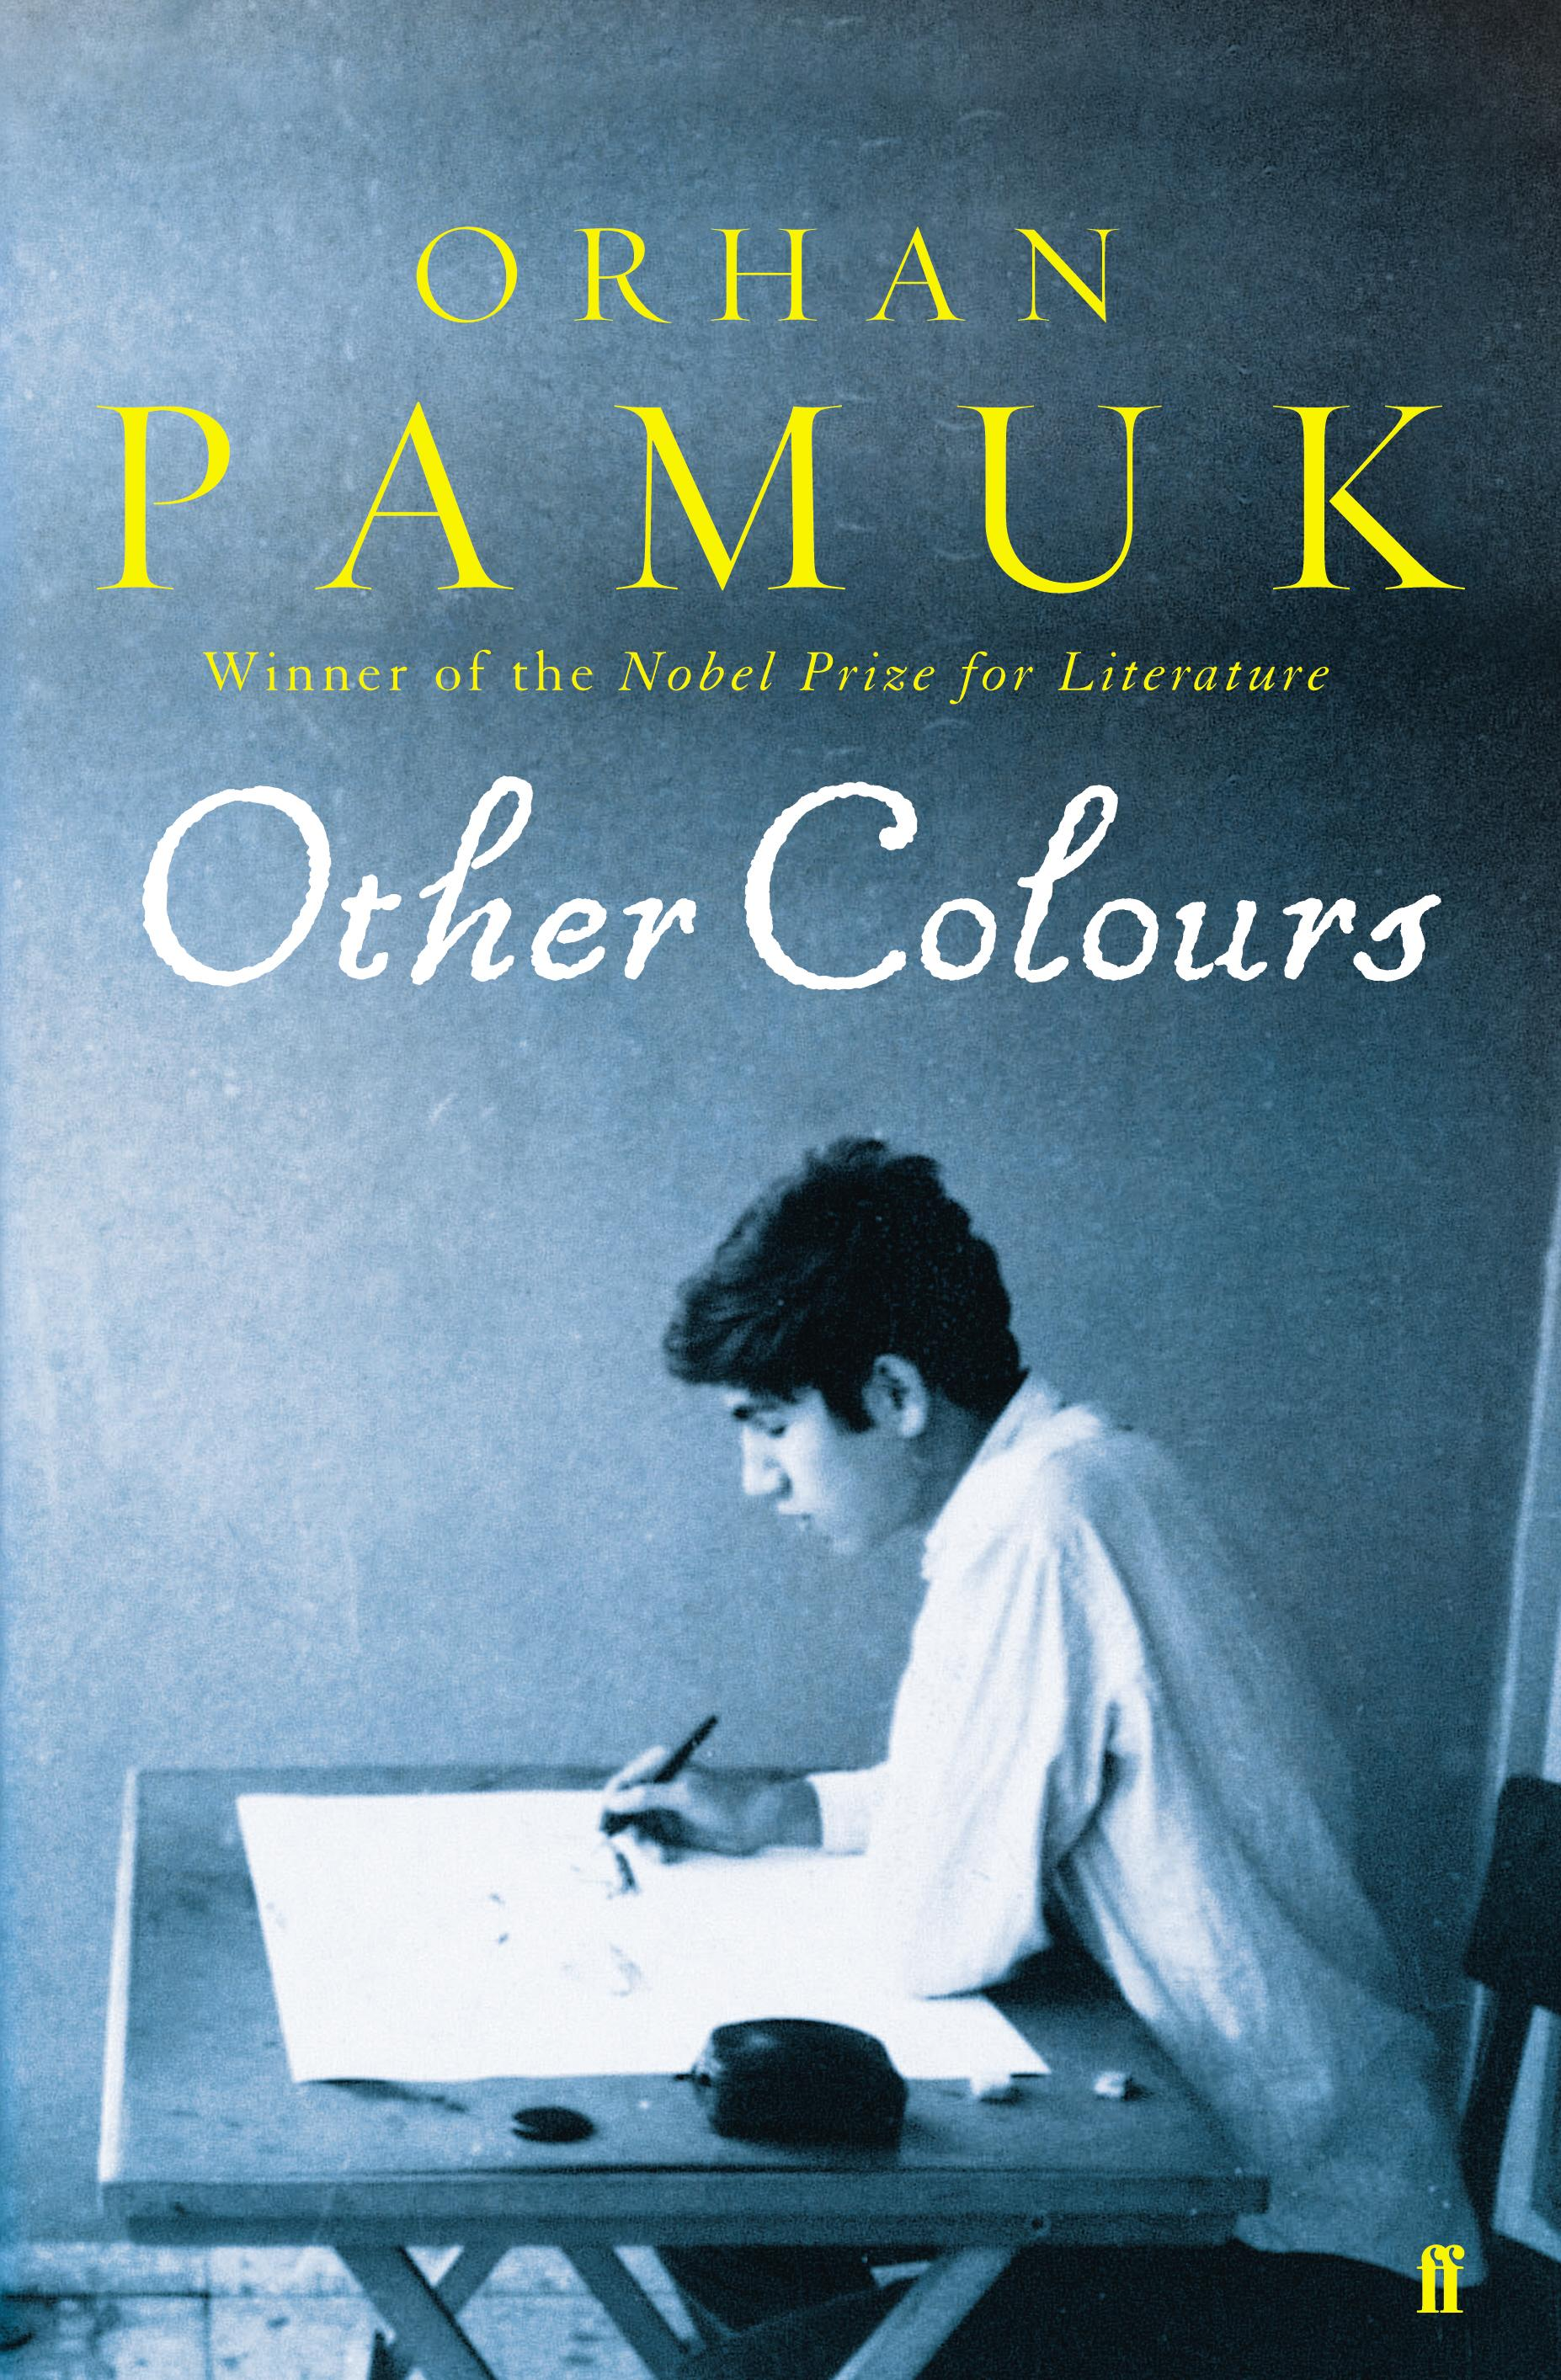 other colors essays and a story Other colors: essays and a story  lists by orhan pamuk best of turkish literature 308th out of 550 books — 743 voters best books ever 10189th out of 51,555 books — 182,187 voters كتب أدباء نوبل.